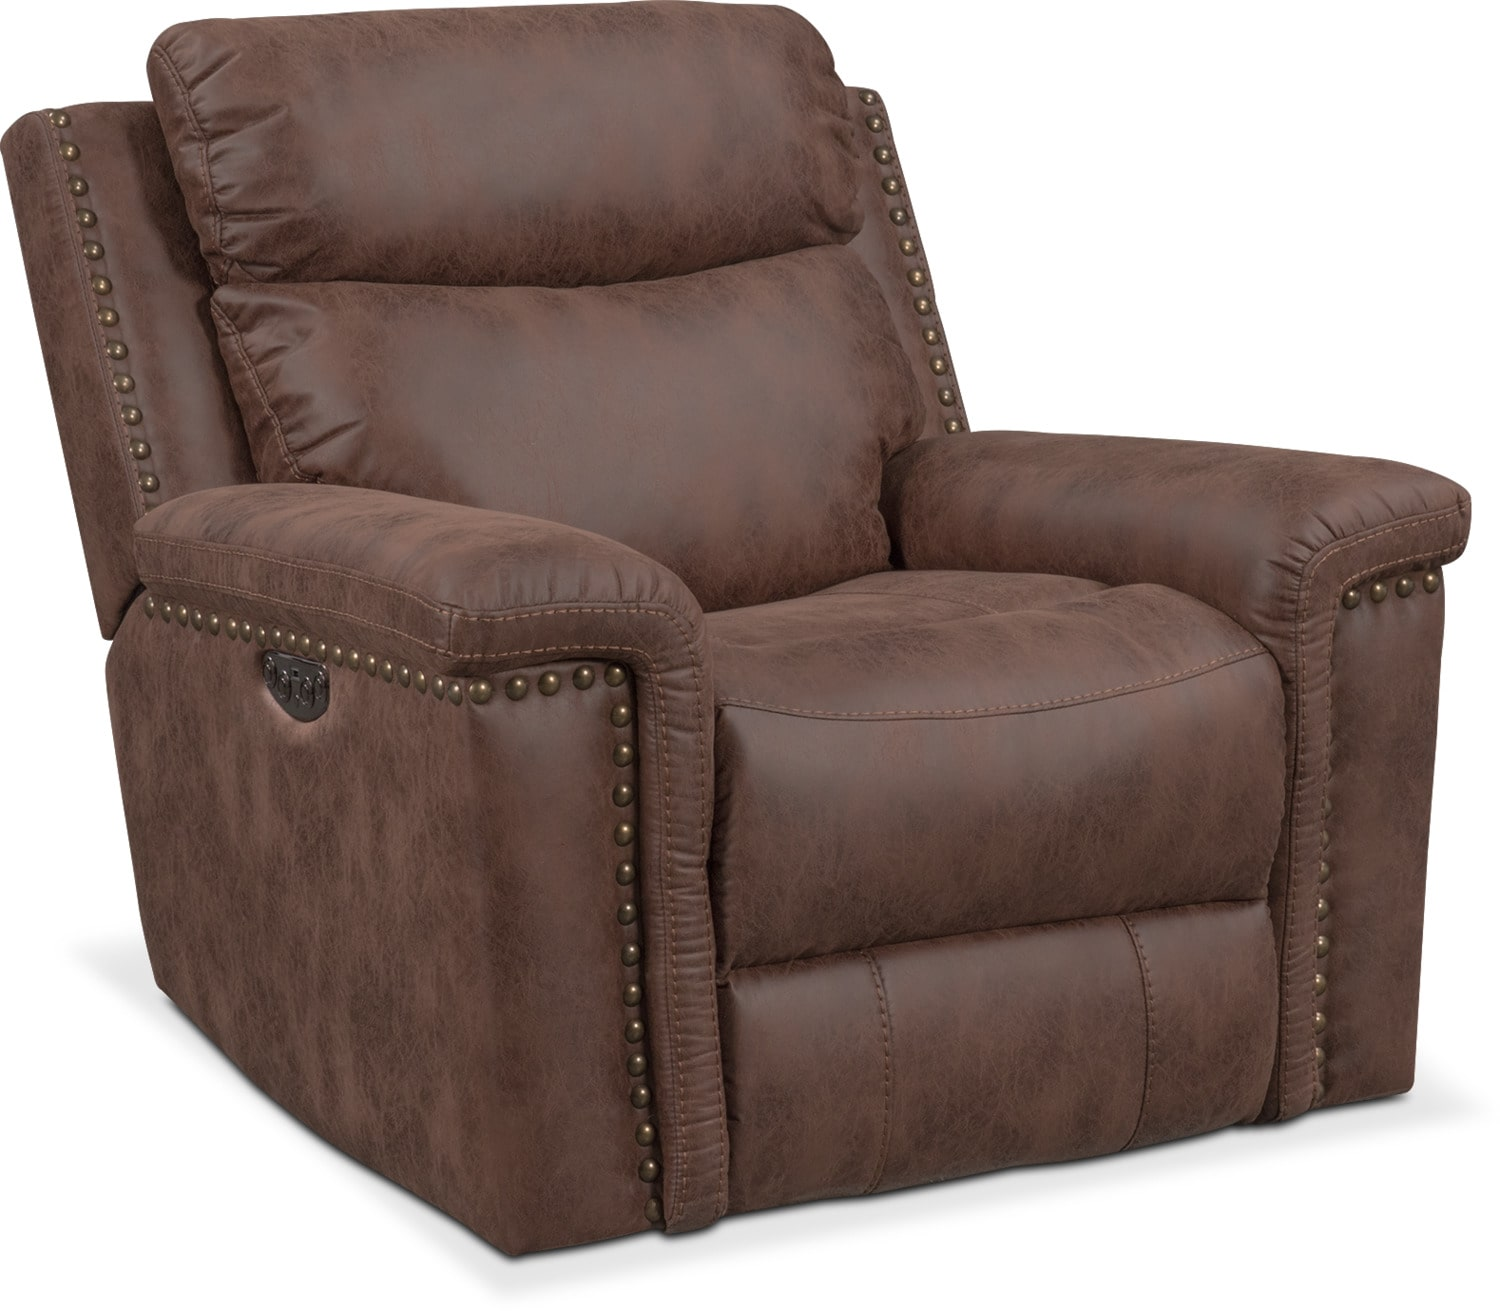 Exceptional Montana Power Recliner   Brown